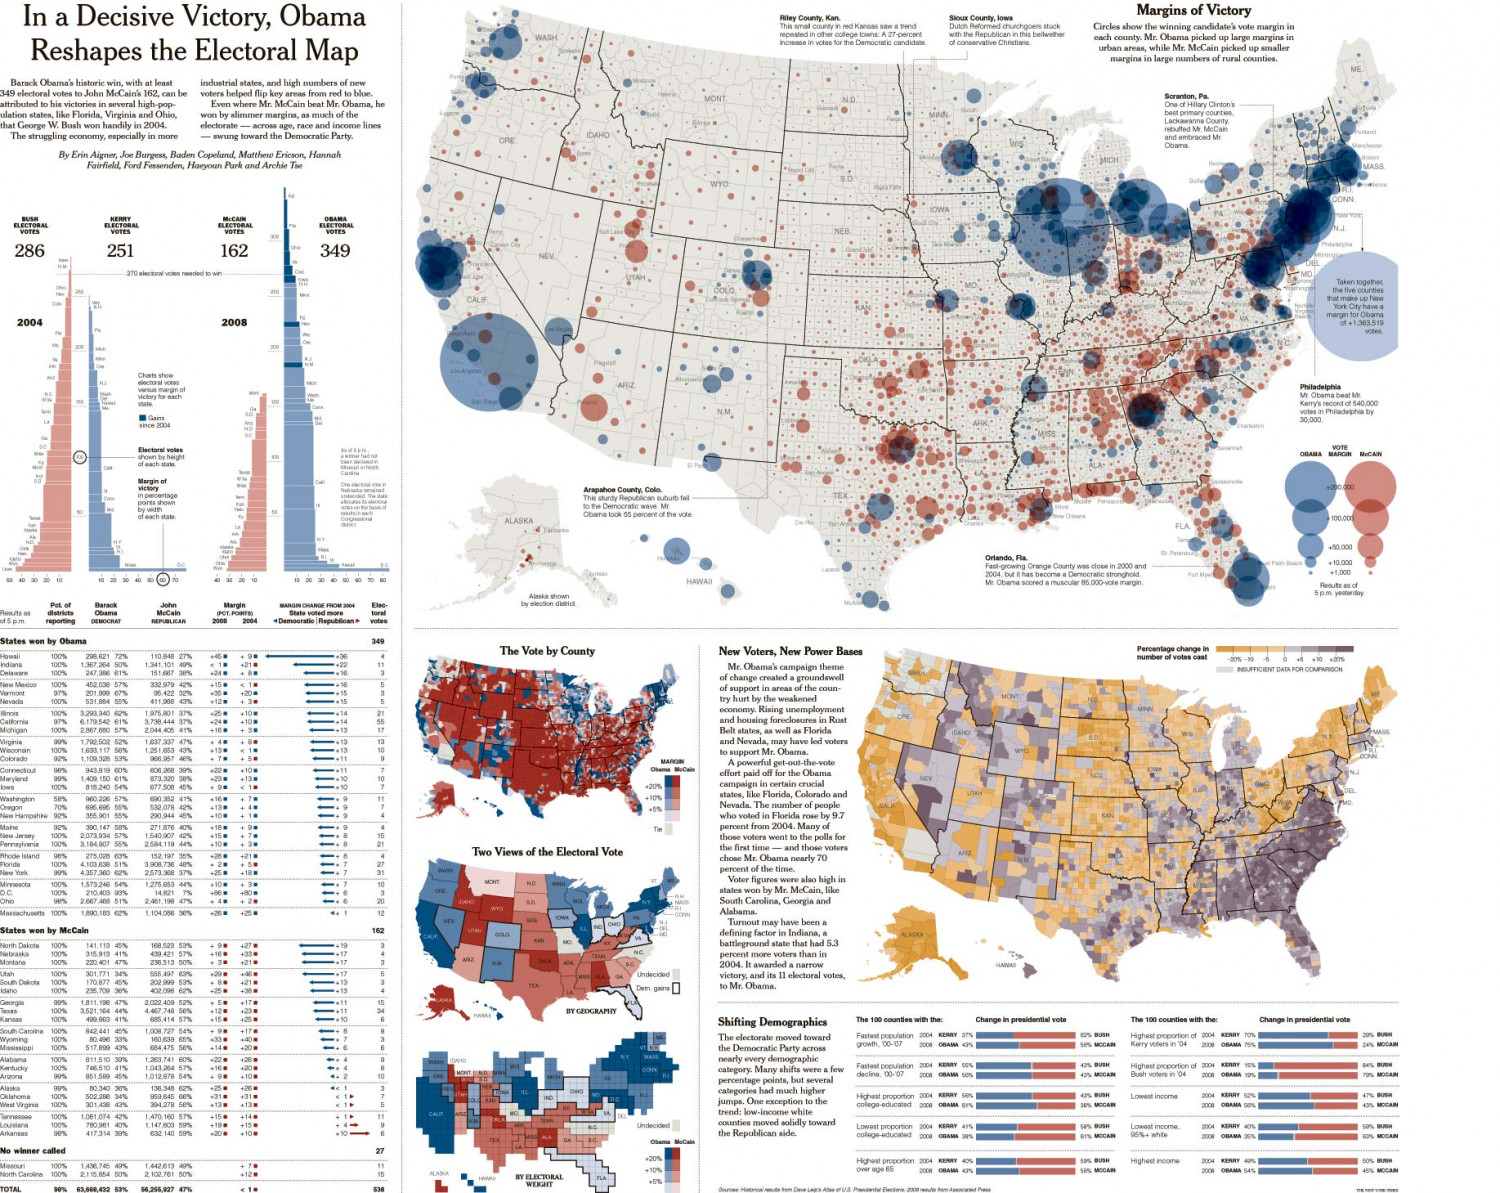 In a Decisive Victory, Obama Reshapes the Electoral Map Infographic